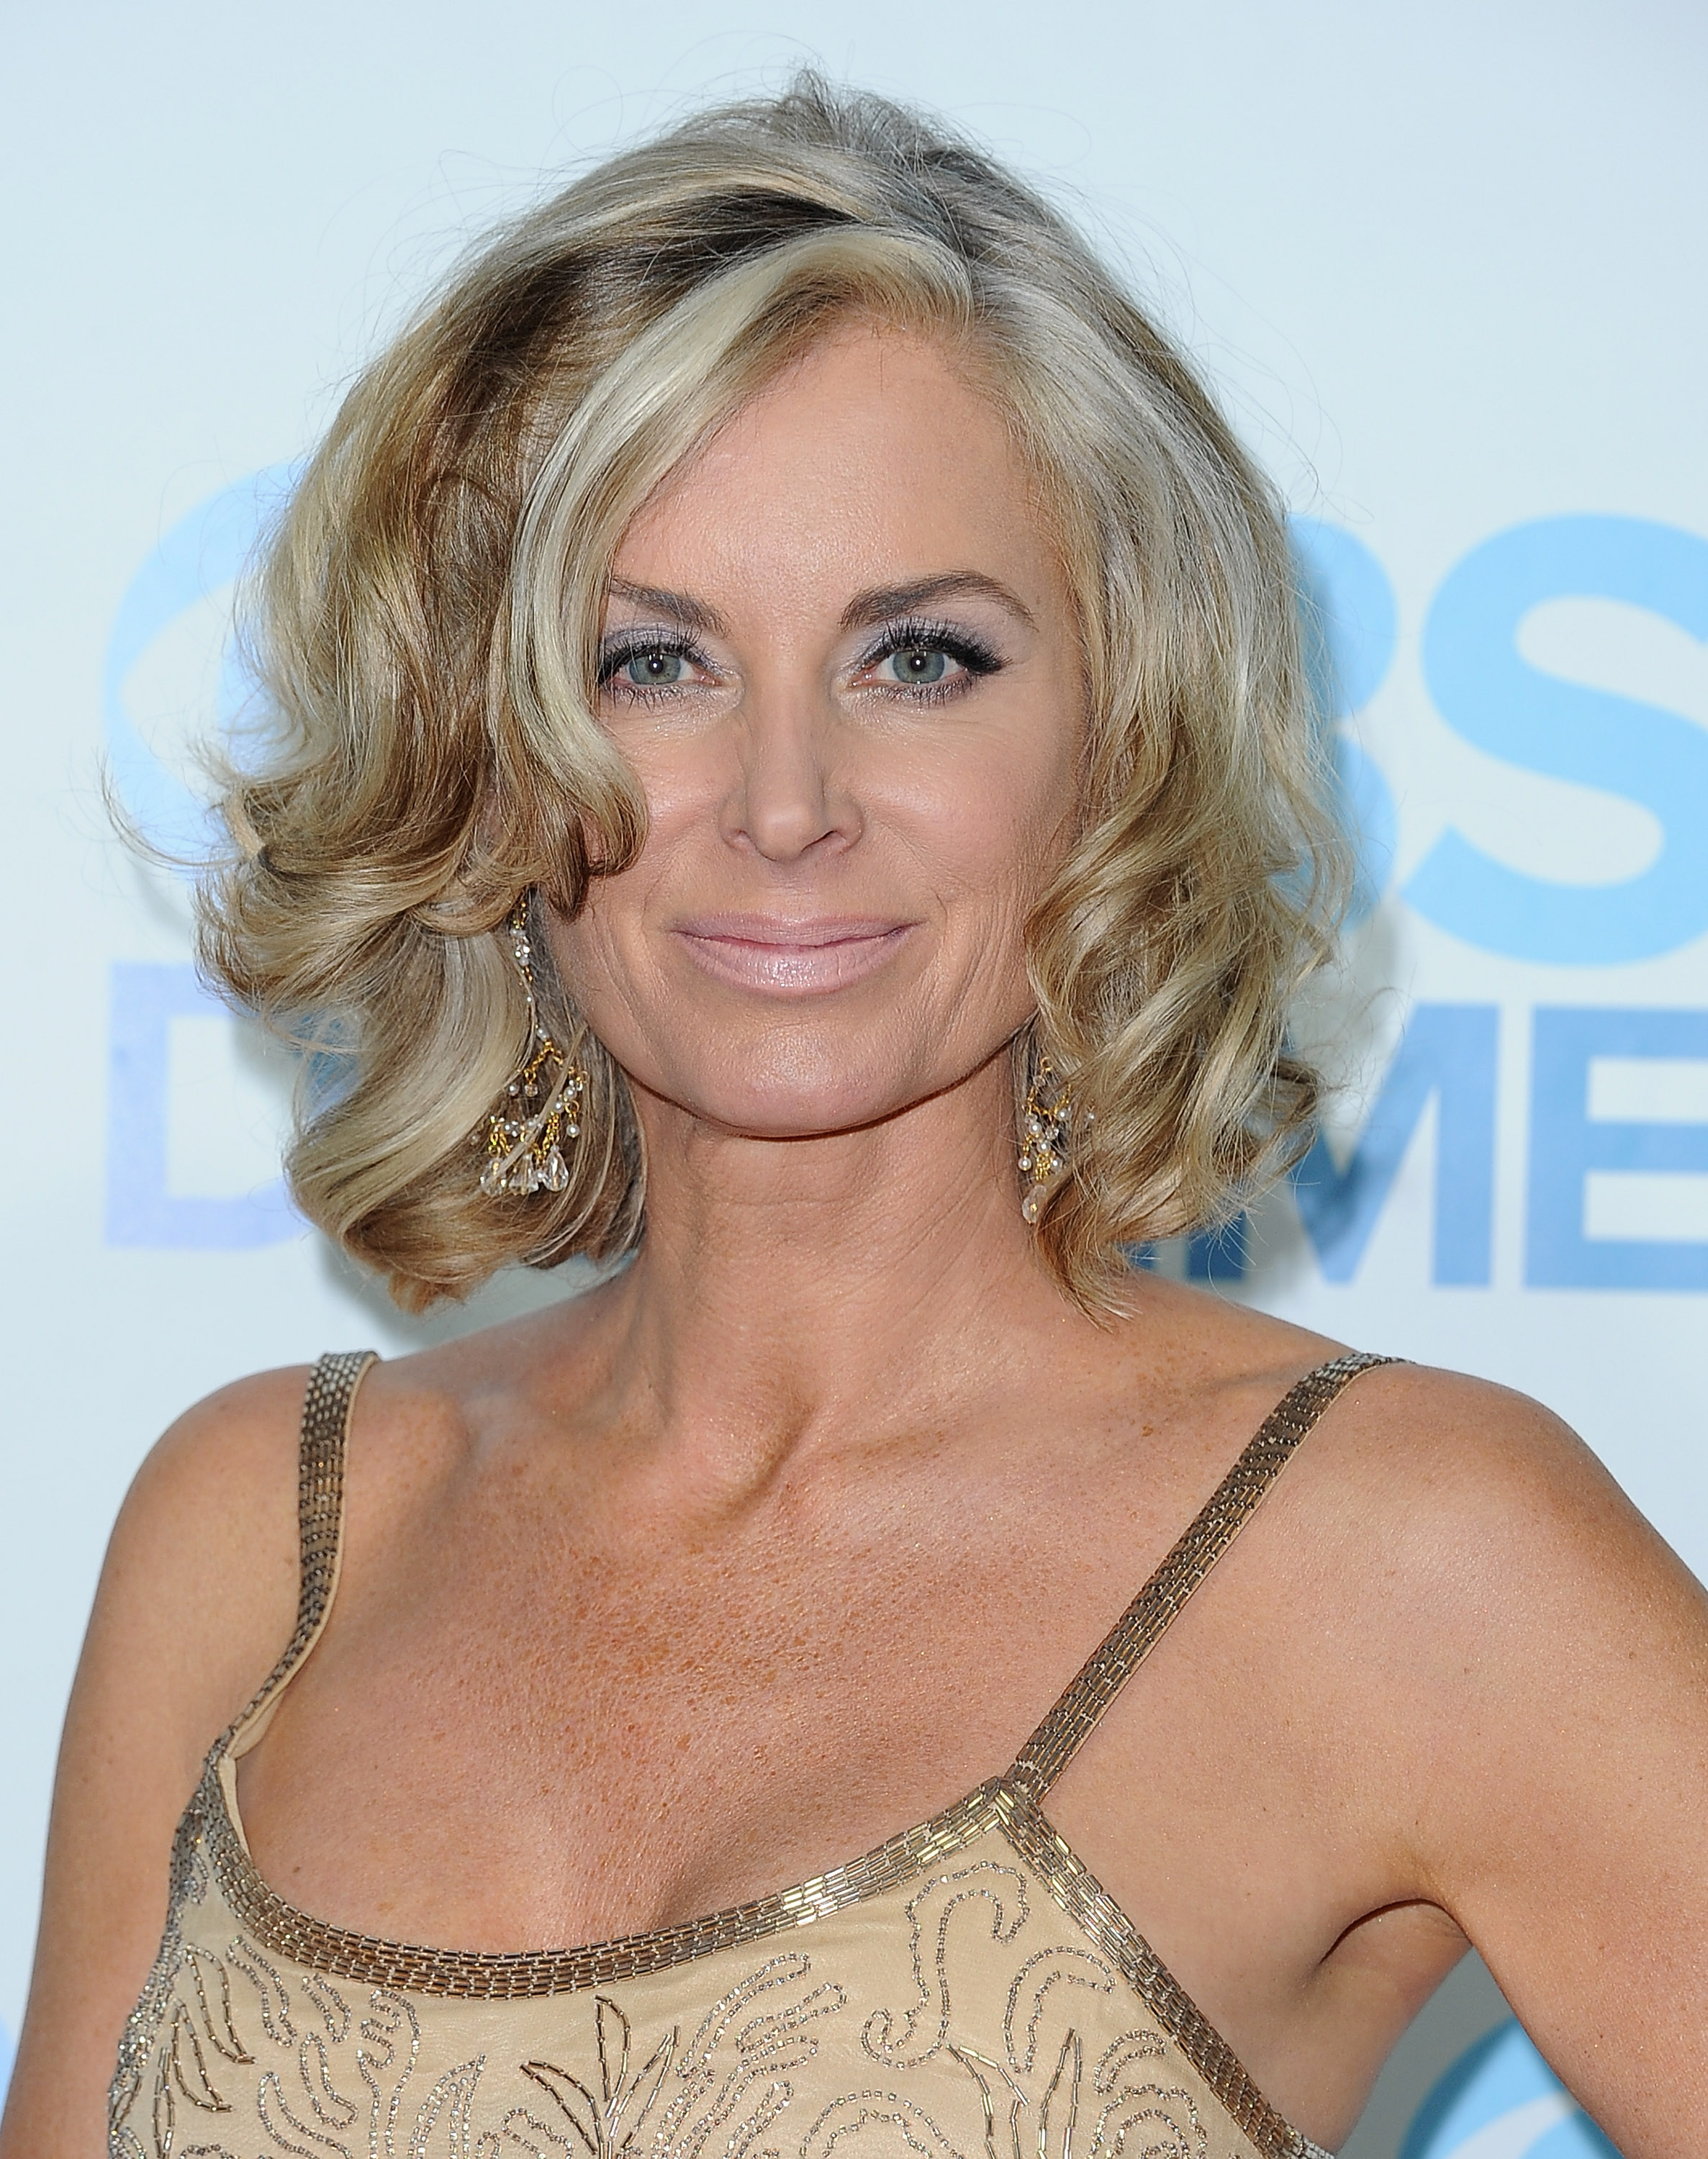 eileen davidson claims she was in abusive relationship on